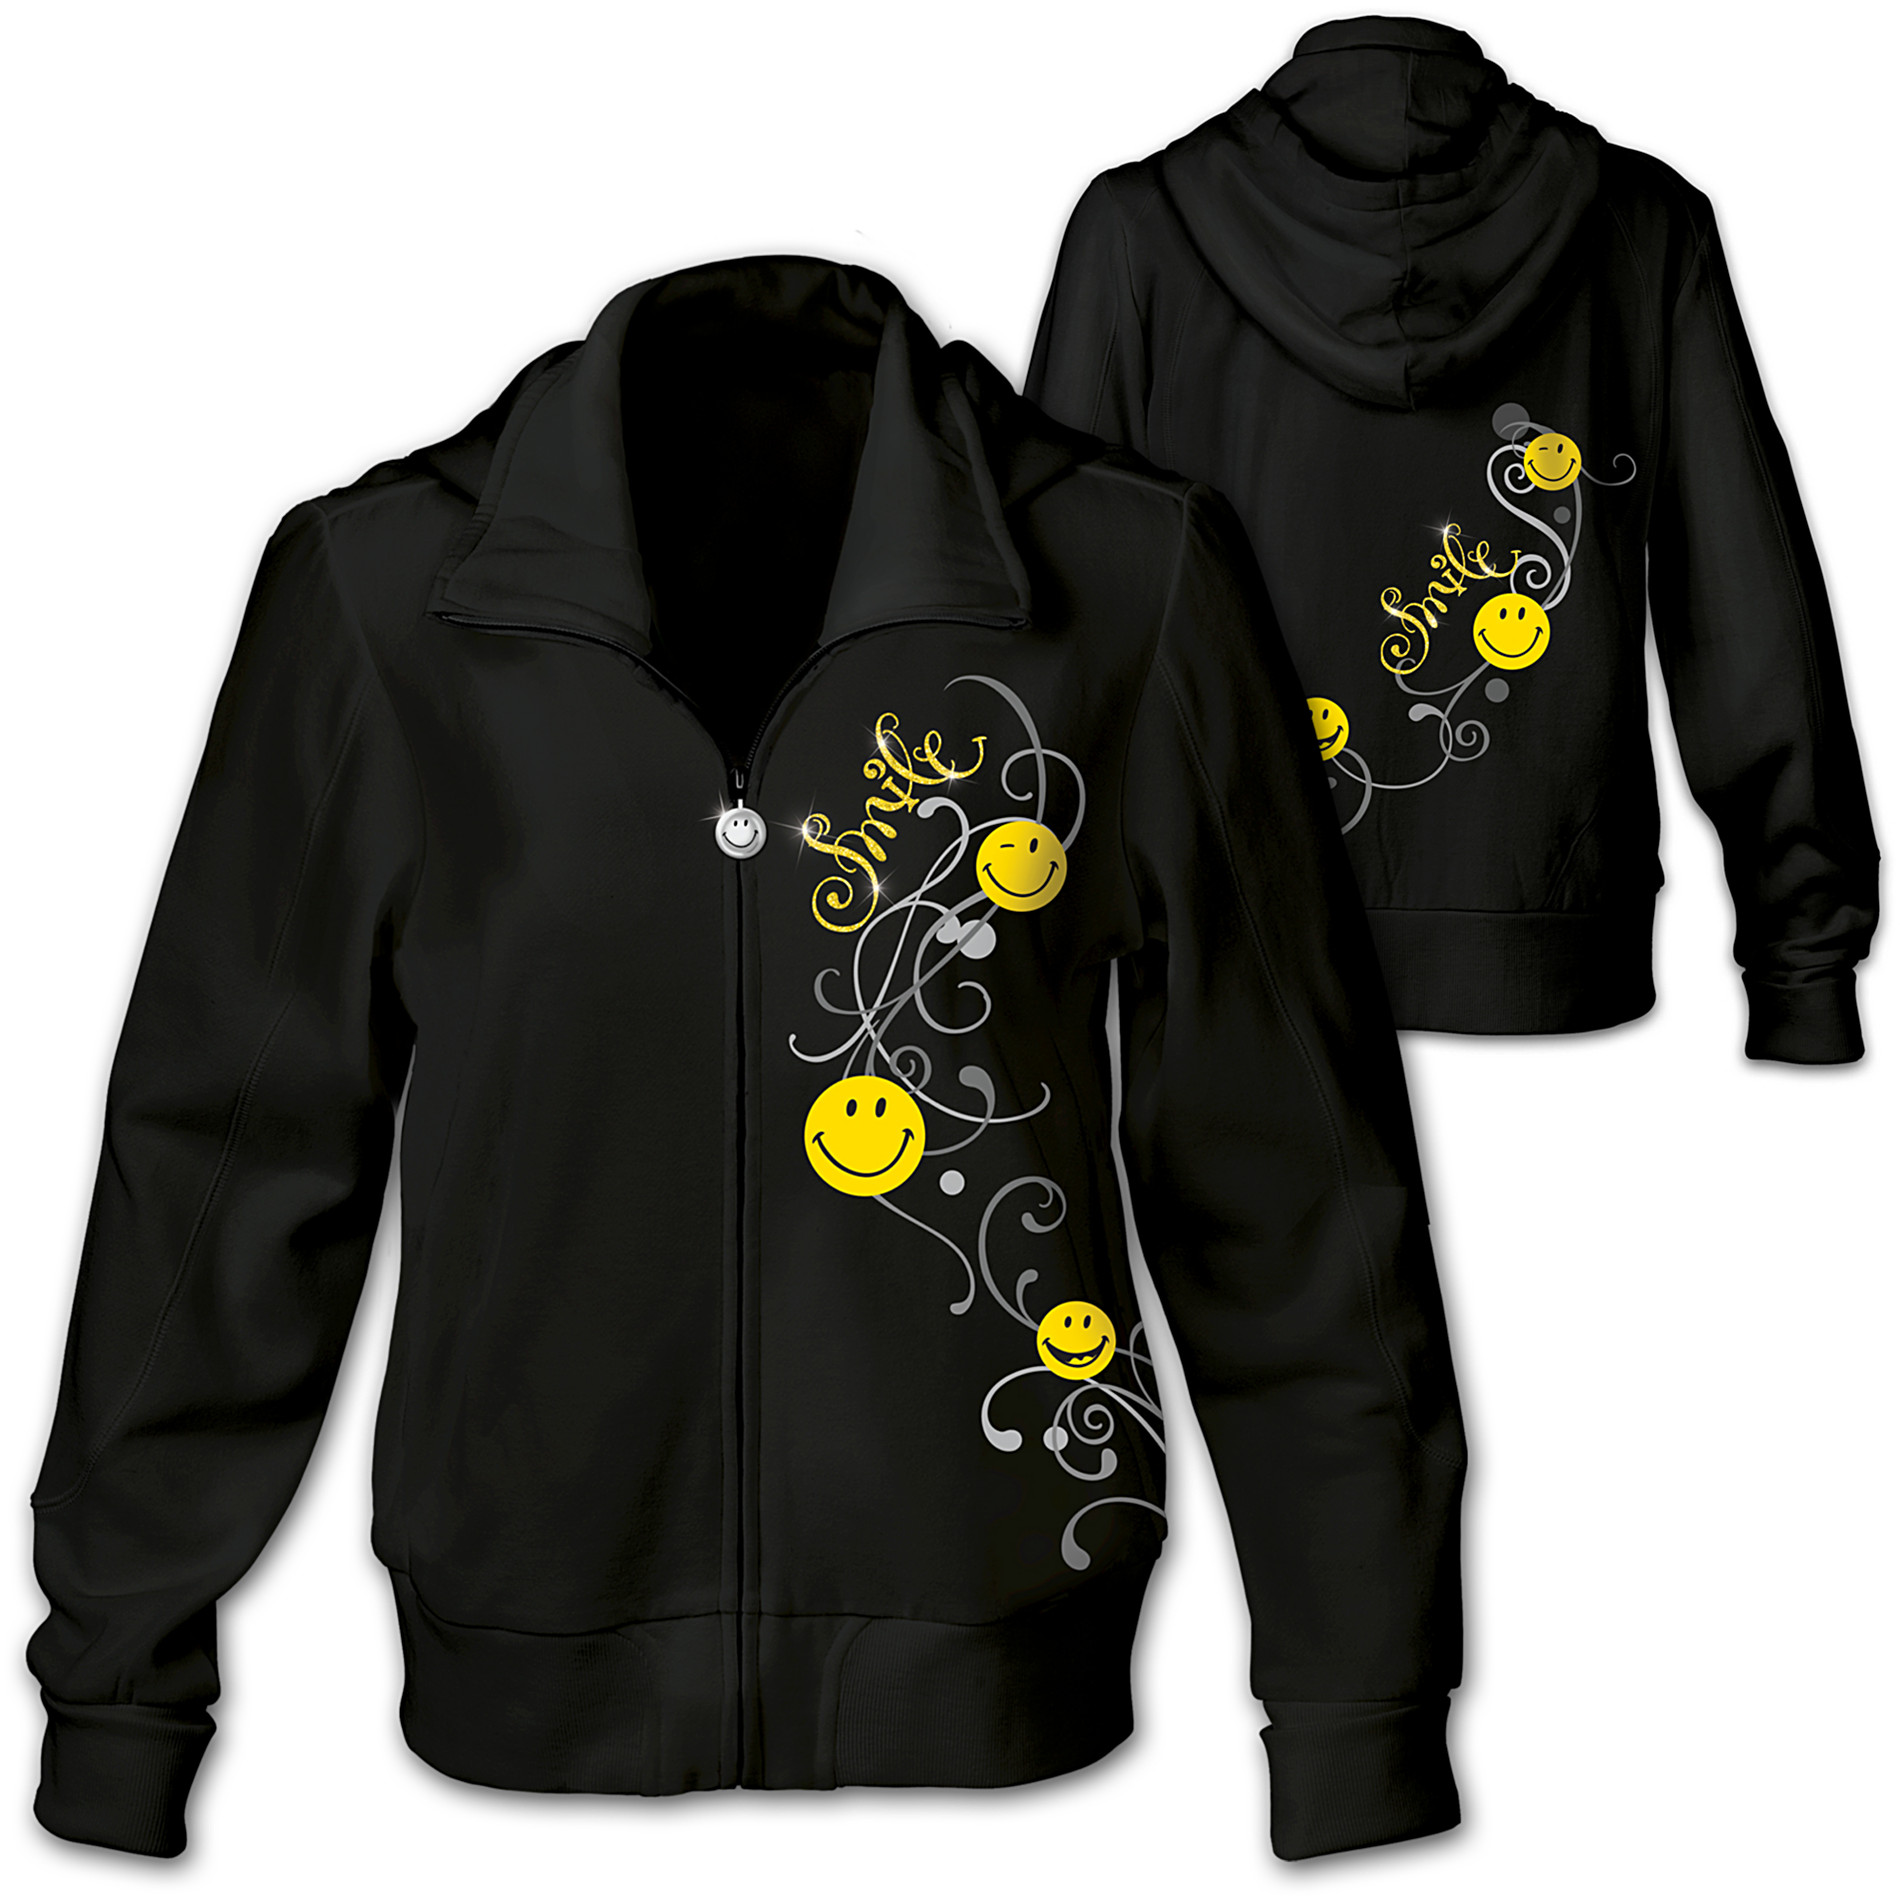 The Bradford Exchange Put A Happy Smile On Your Face Women's Hoodie With Glitter And Scrollwork at Sears.com